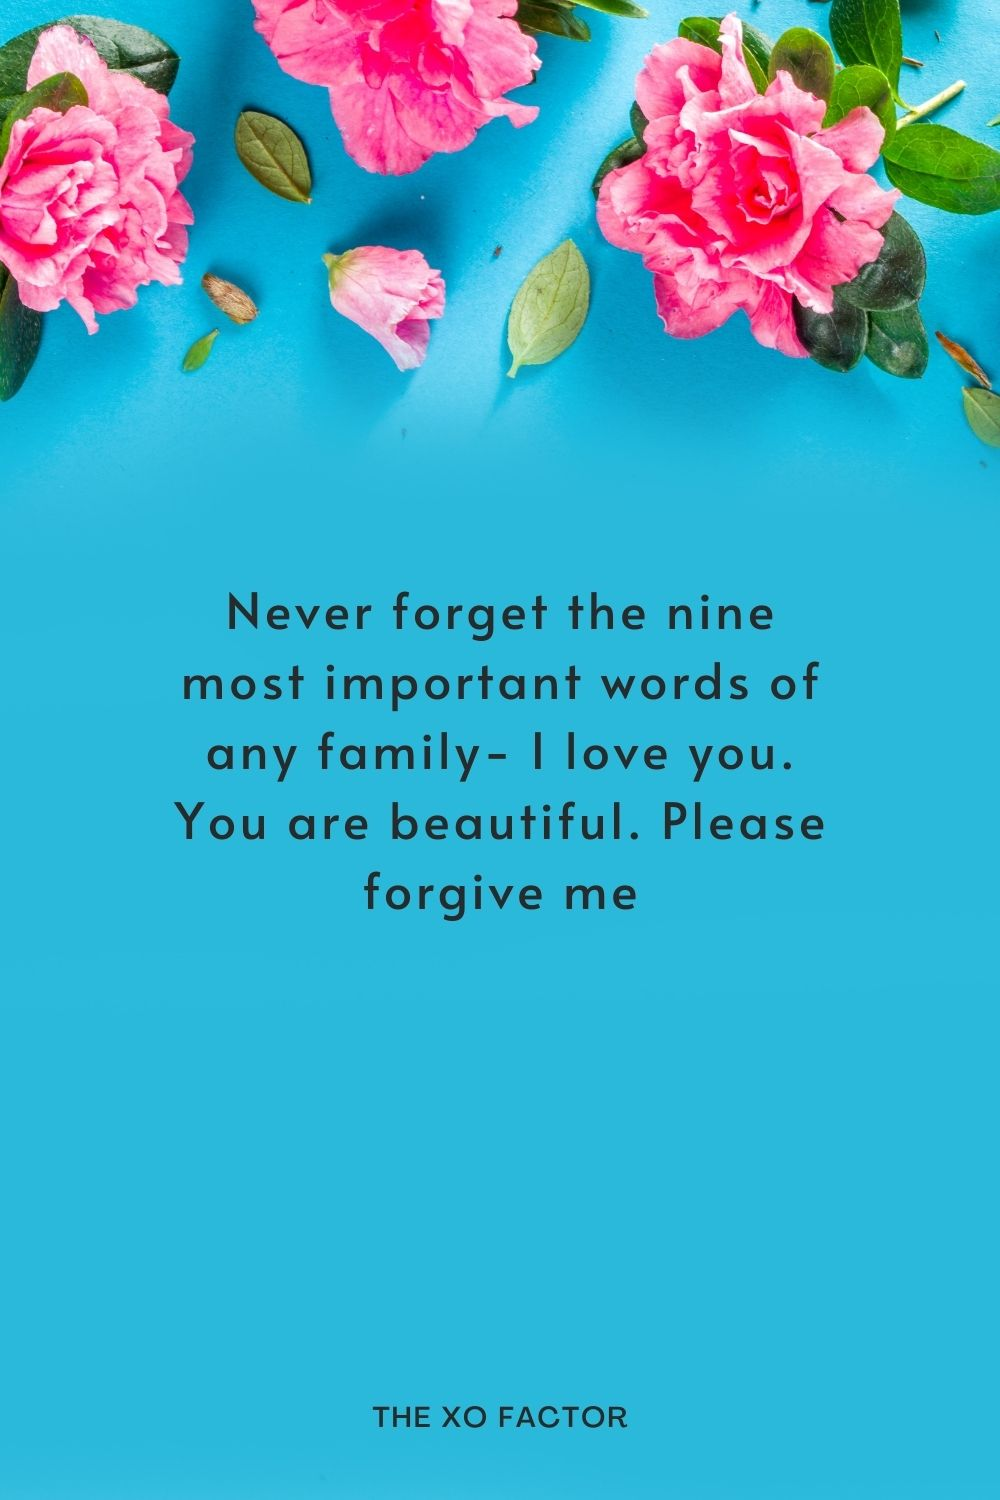 Never forget the nine most important words of any family- I love you. You are beautiful. Please forgive me